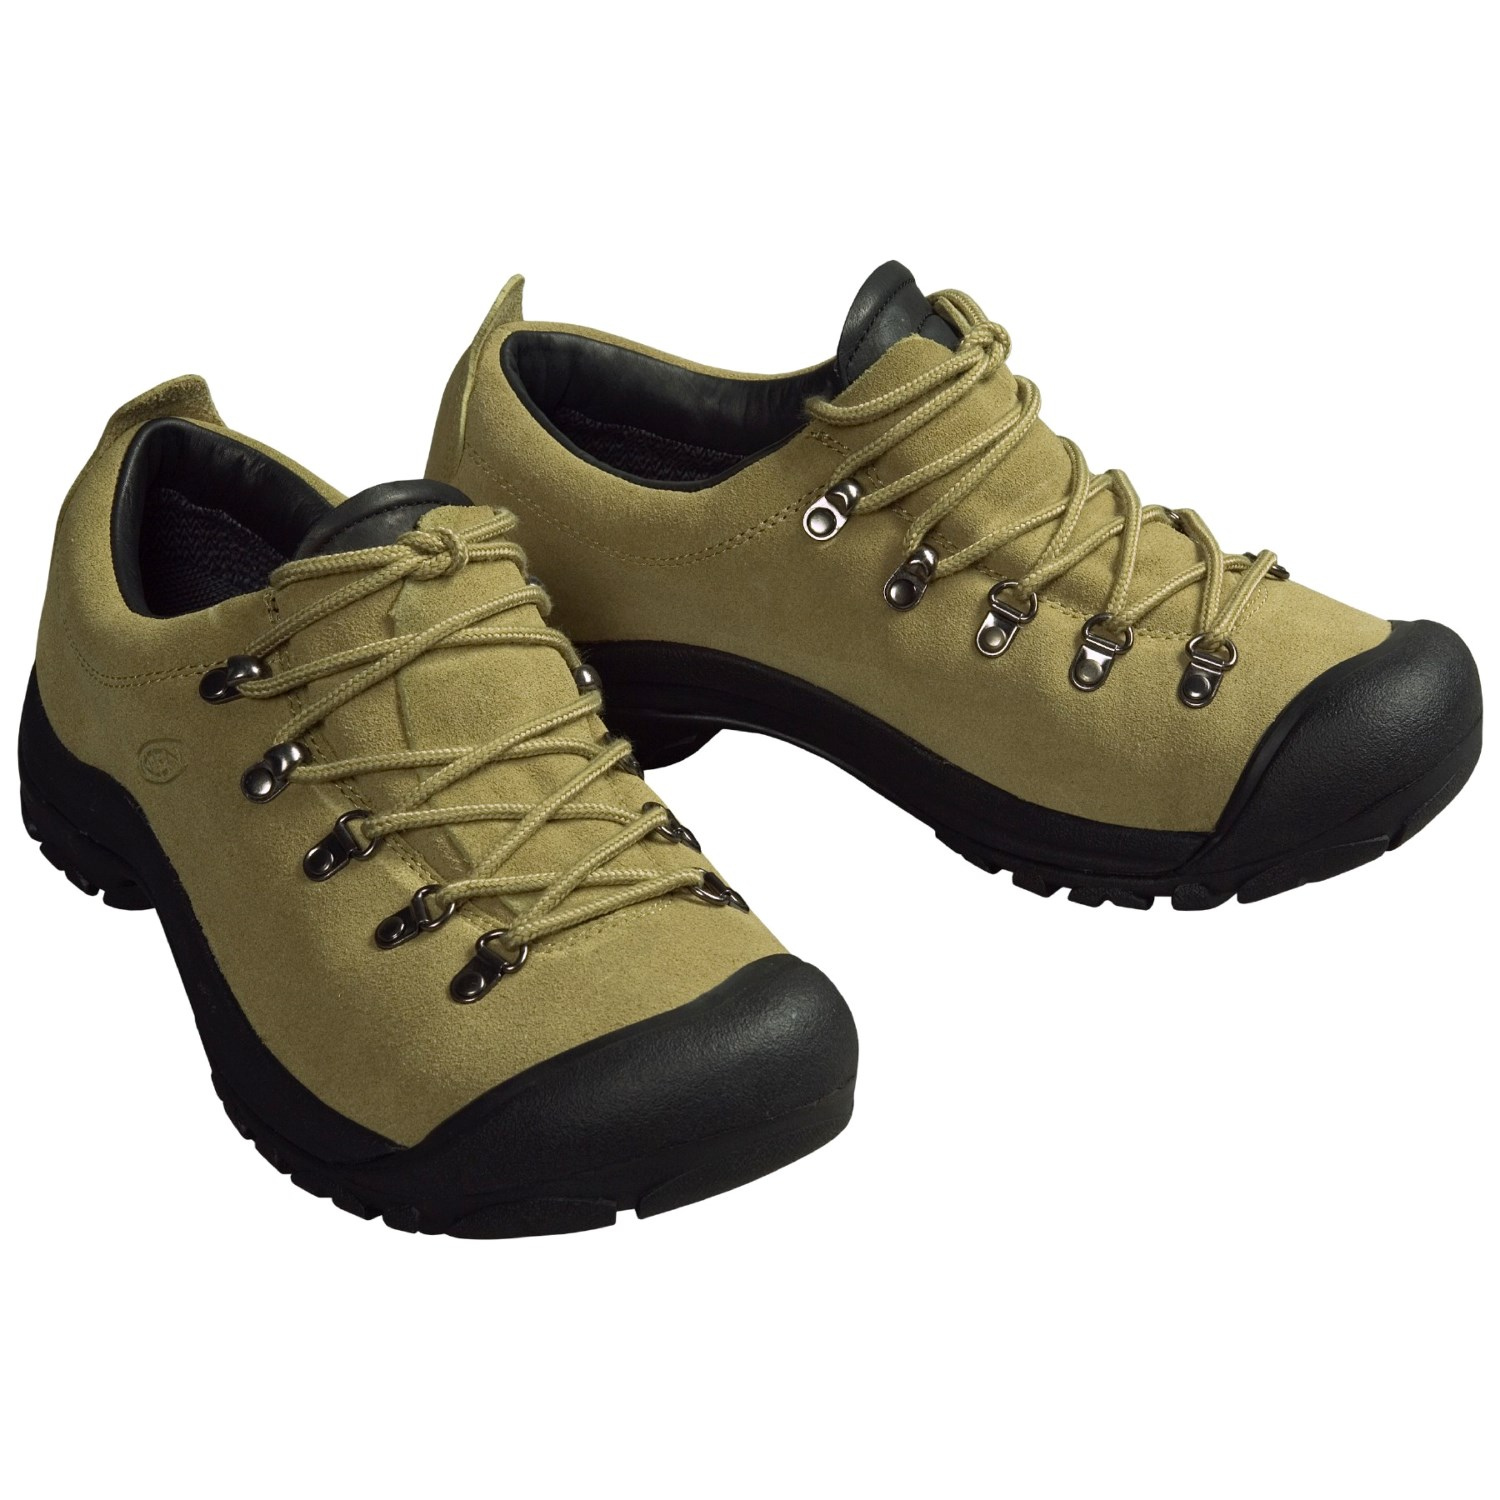 Amazon.com: Customer reviews: Keen Cortina II Mid Womens ...